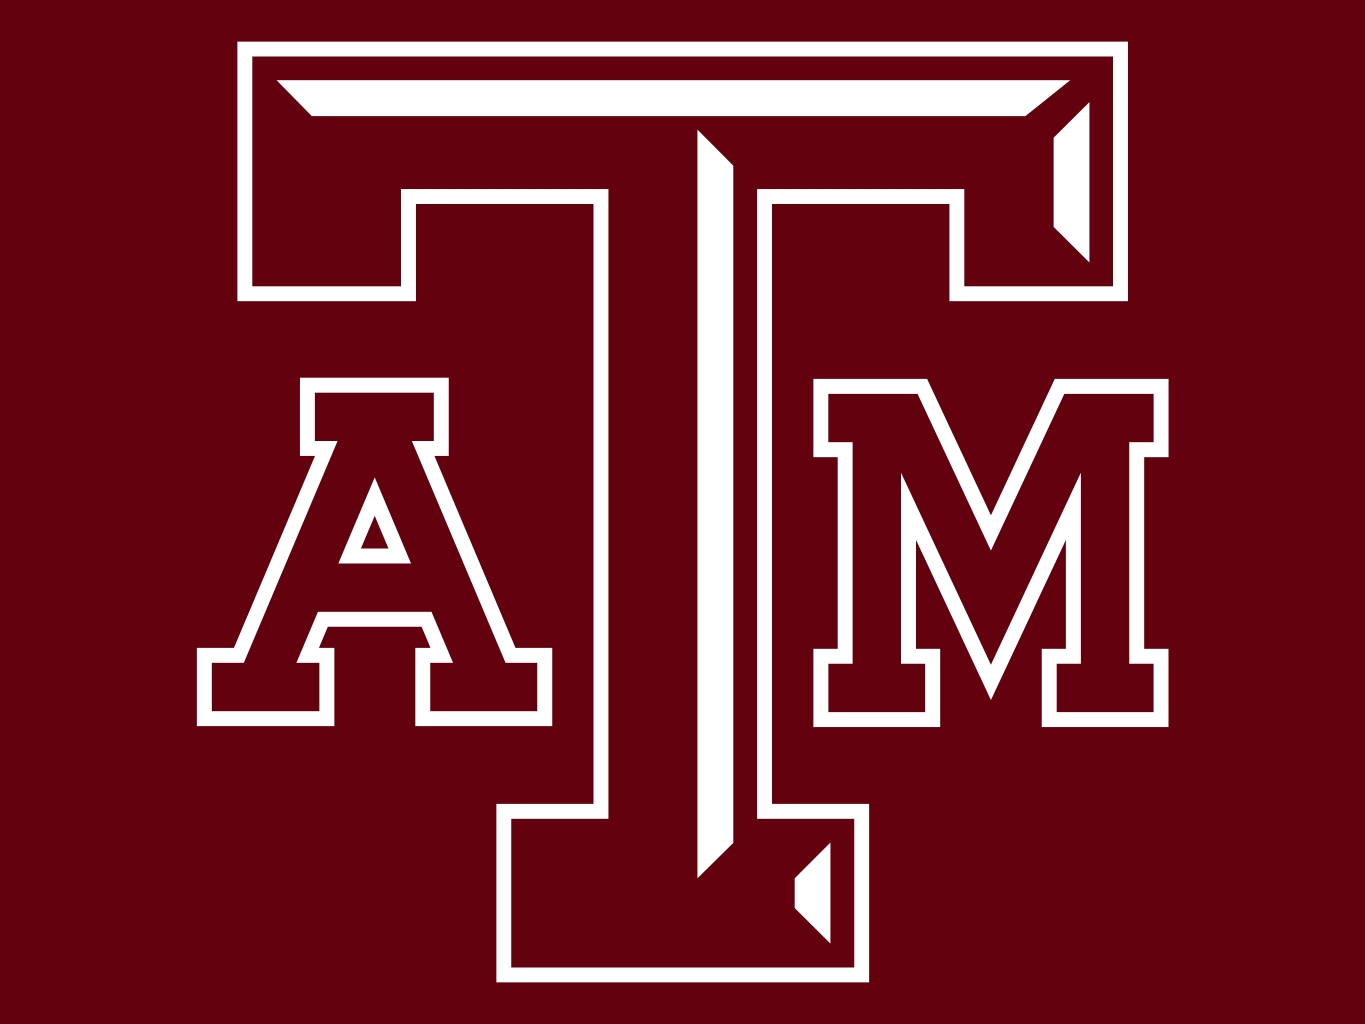 http://tuesdayshorse.files.wordpress.com/2012/08/texas_am_logo_lge.jpg